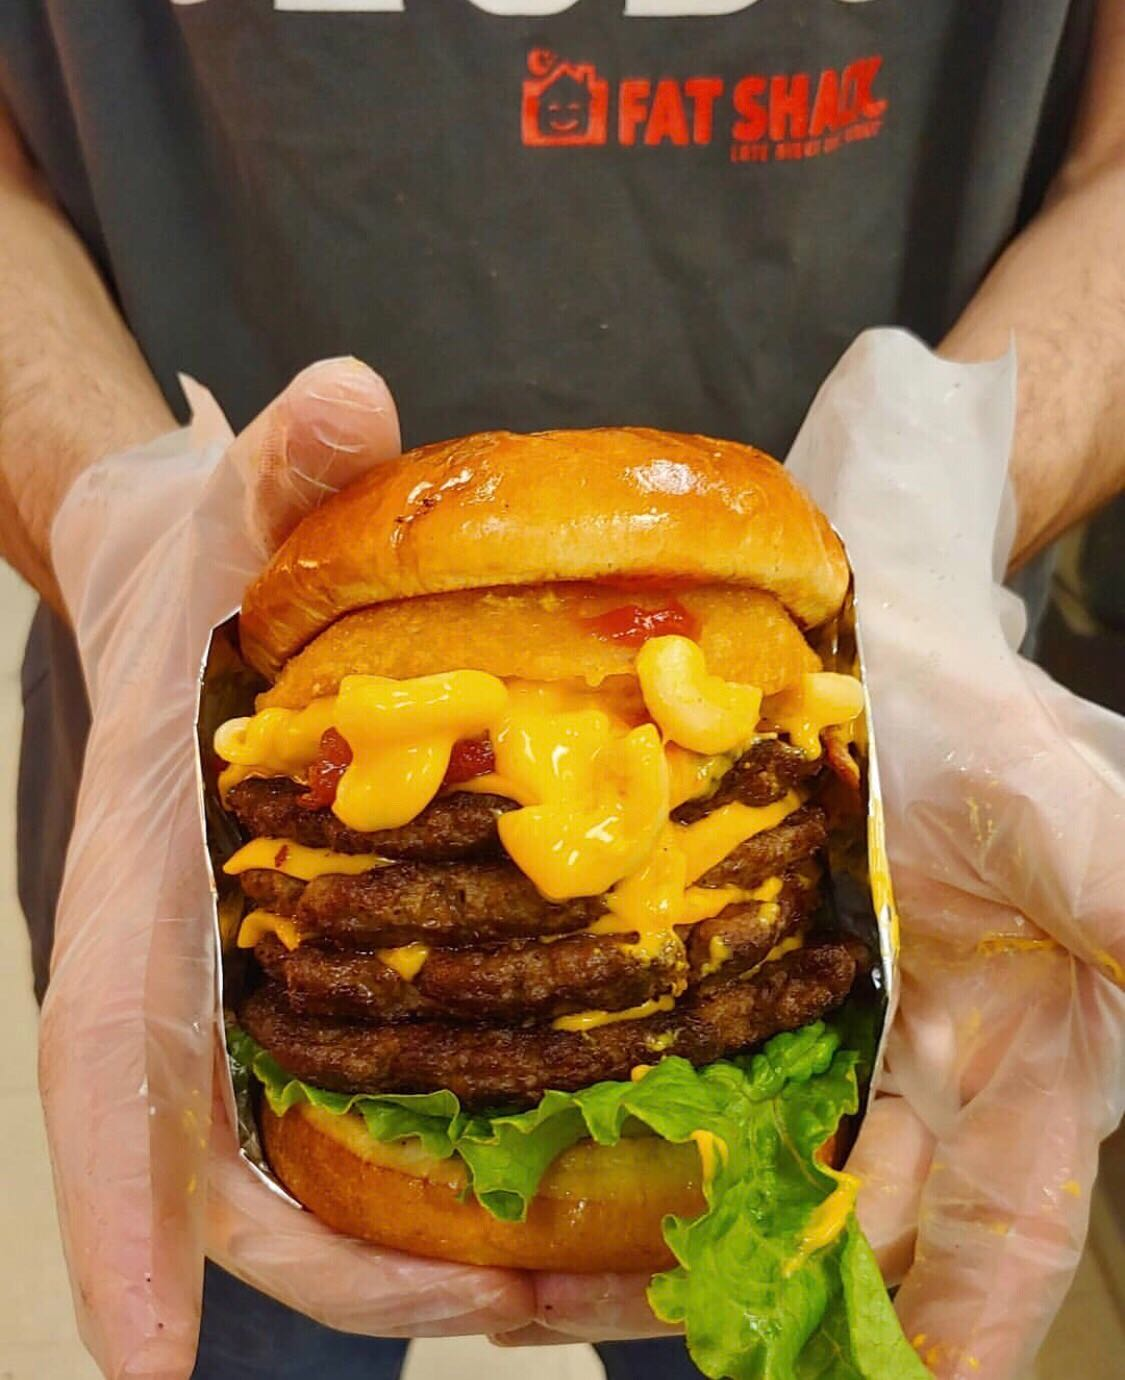 A burger with four patties dripping with cheese